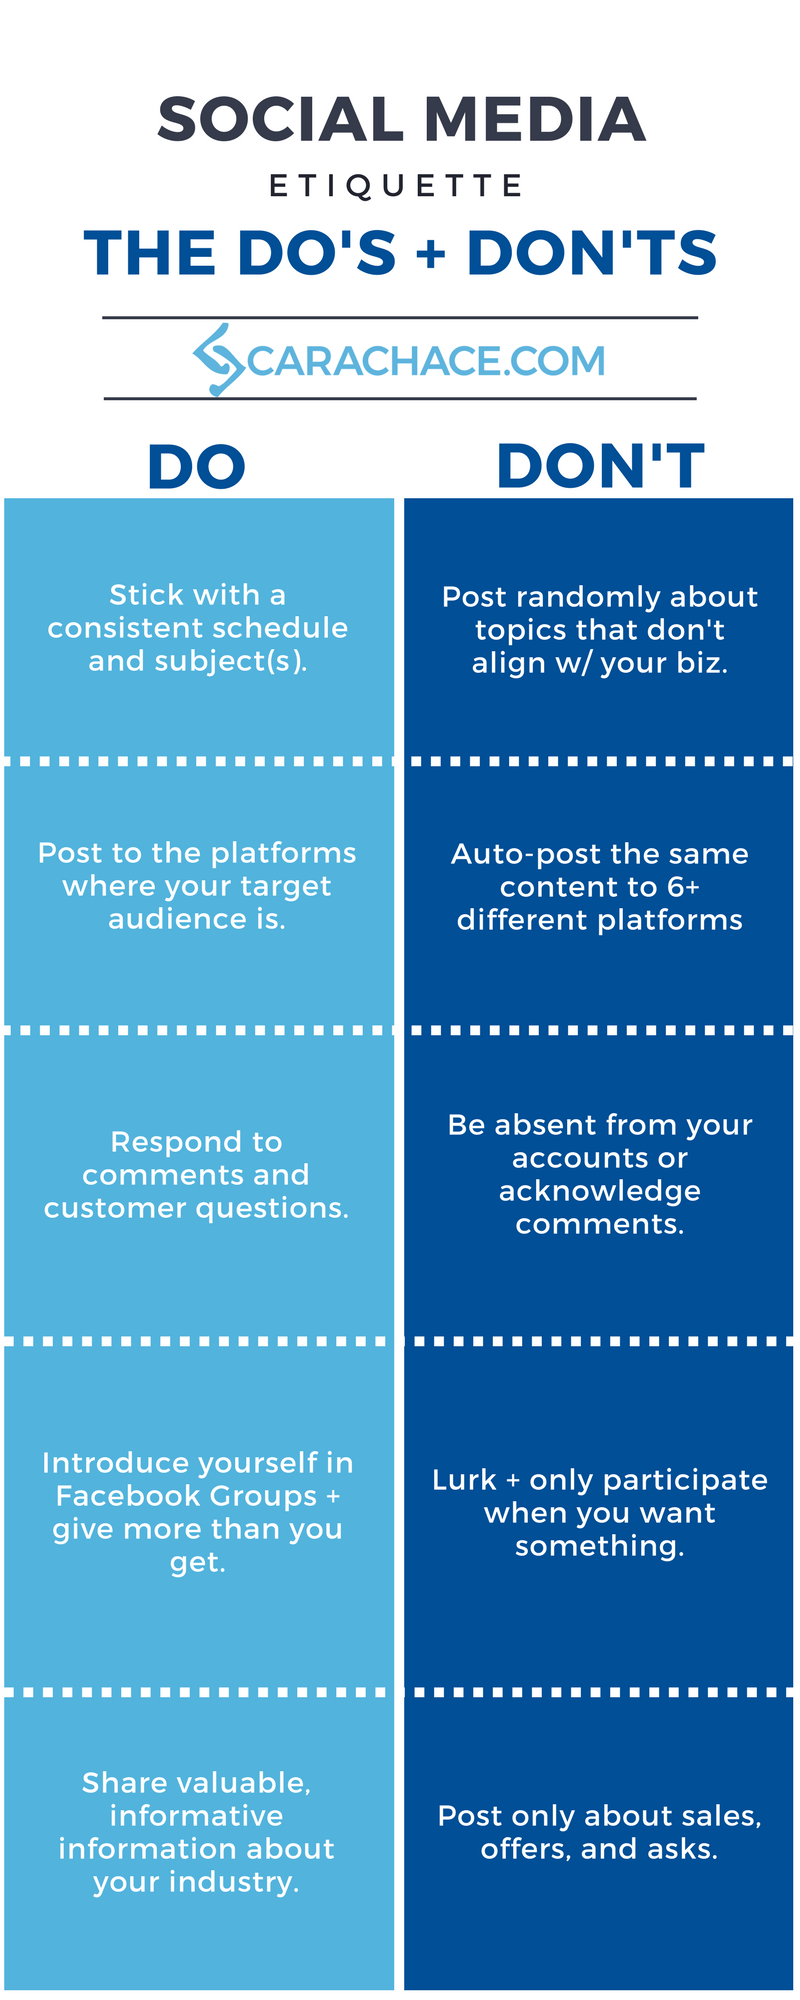 how not to be an asshat on social media infographic.png